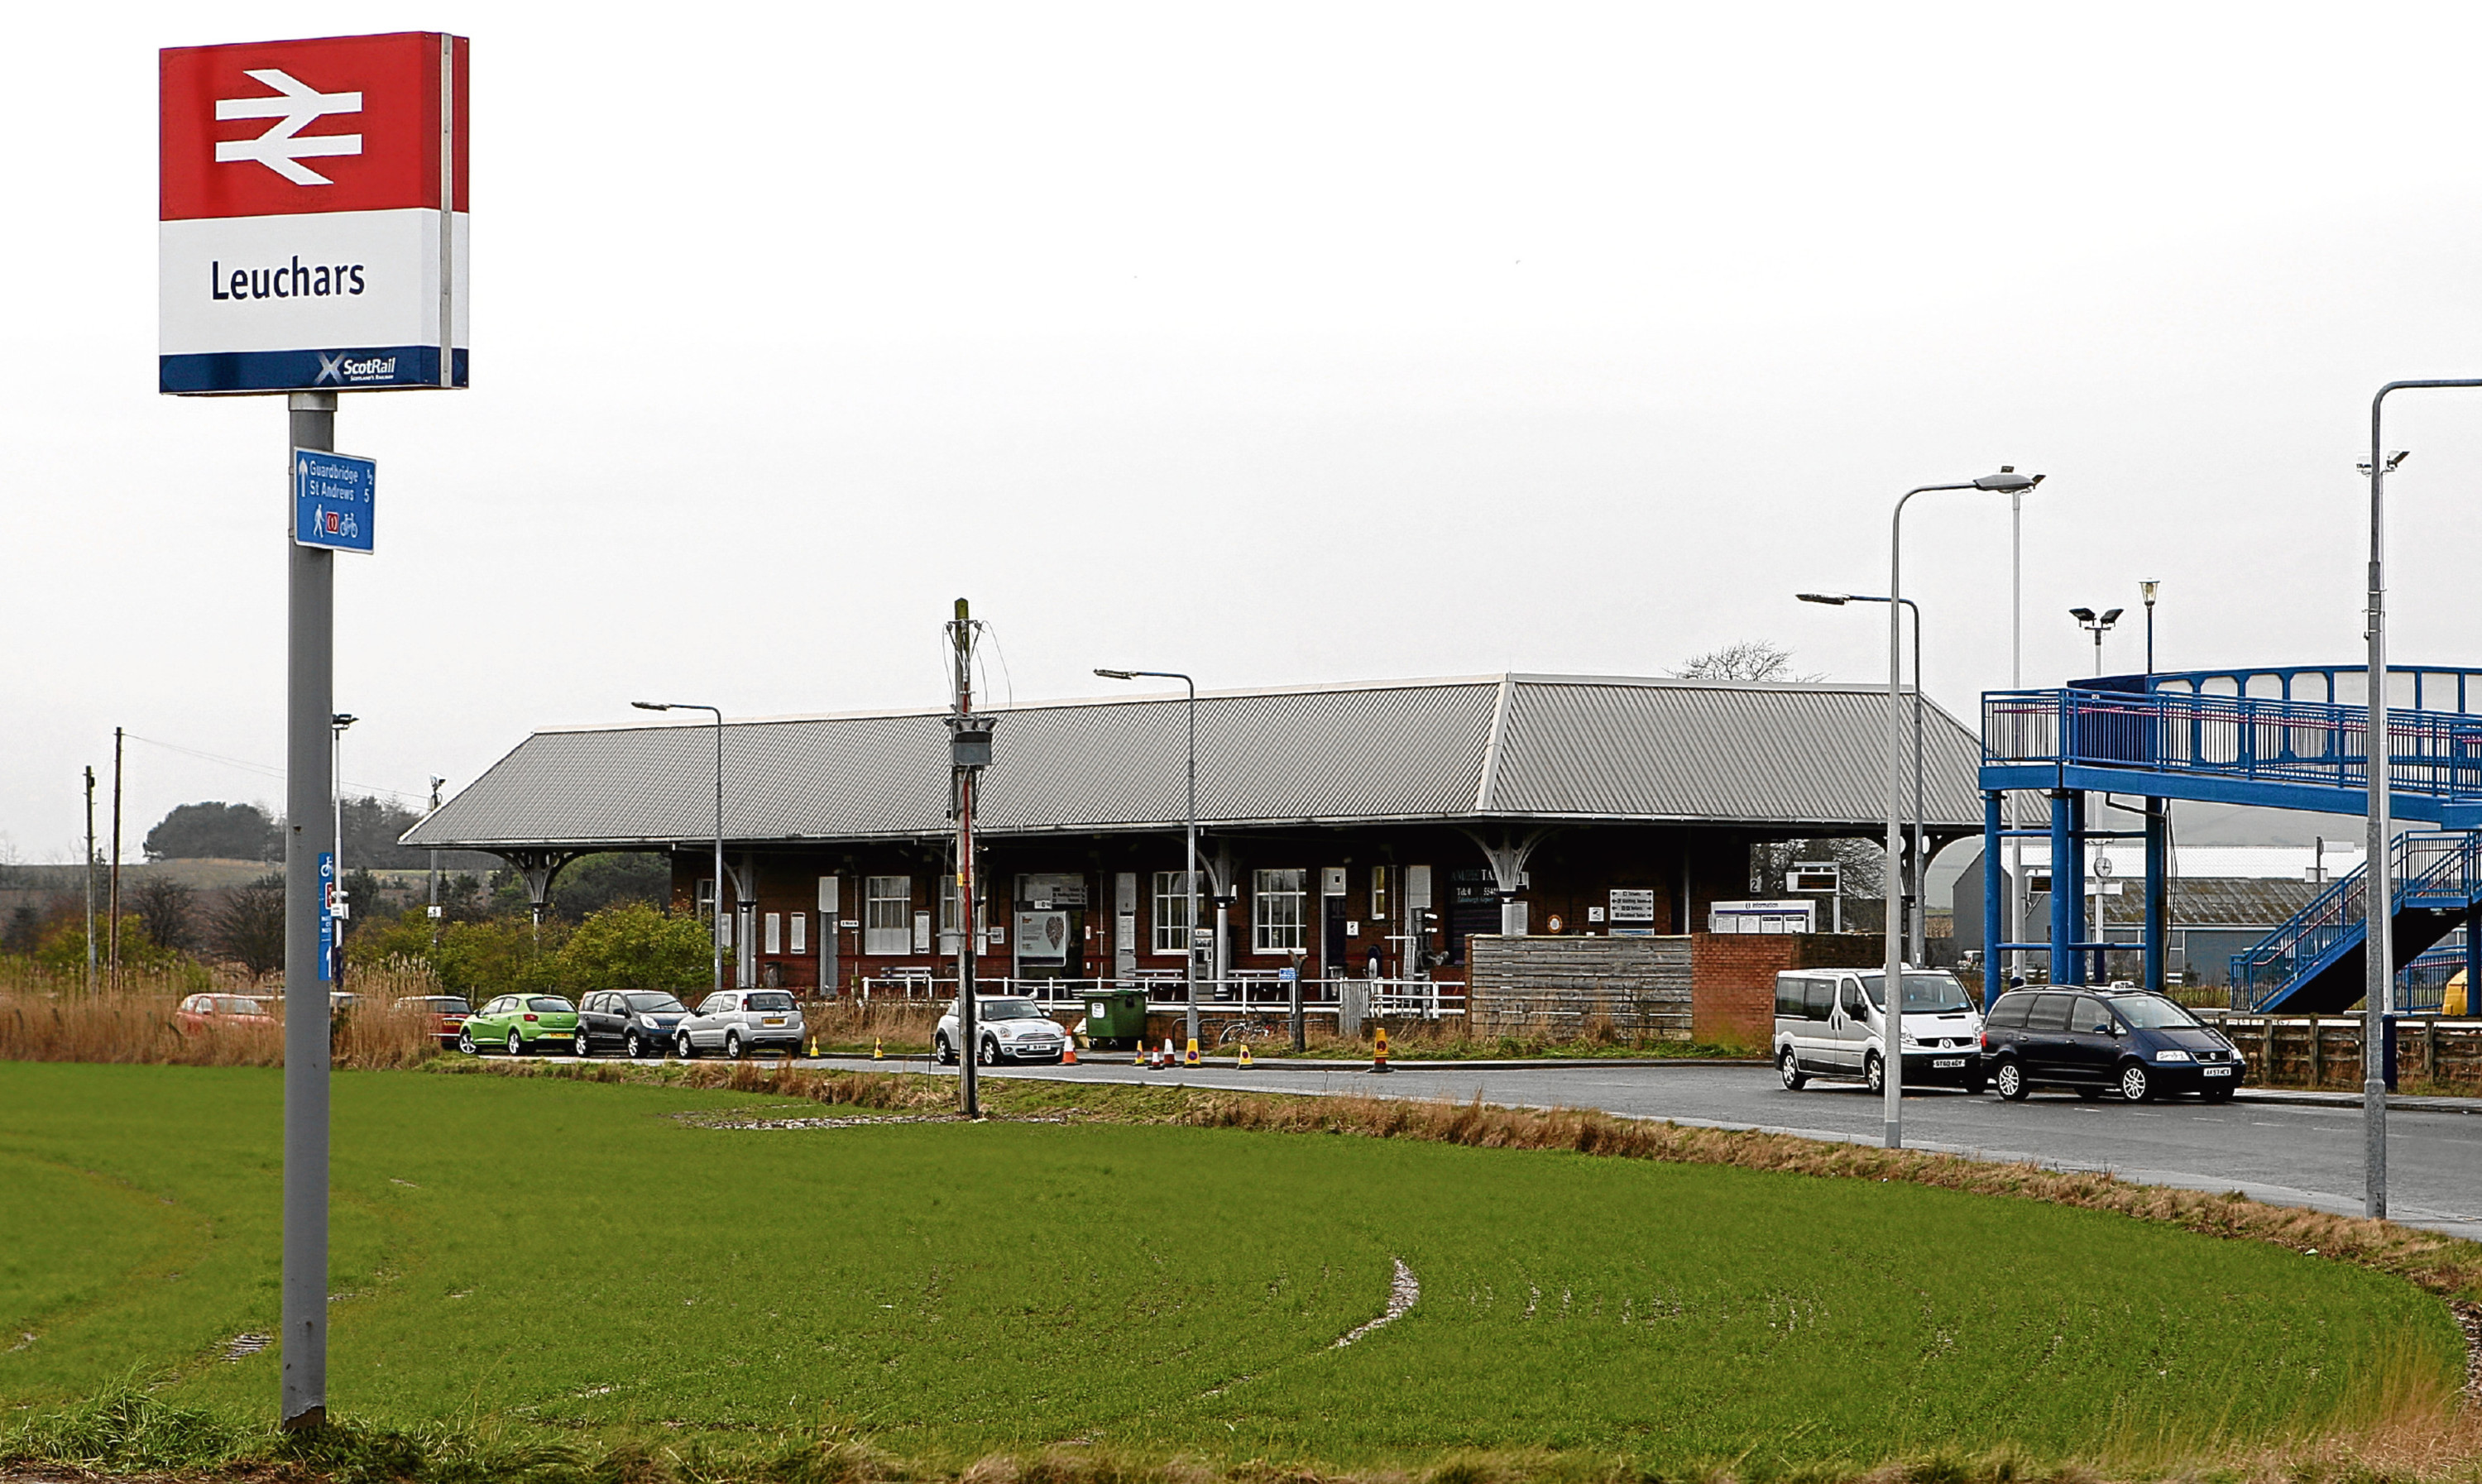 Leuchars railway station with the pedestrian ramps at the right of the photograph.